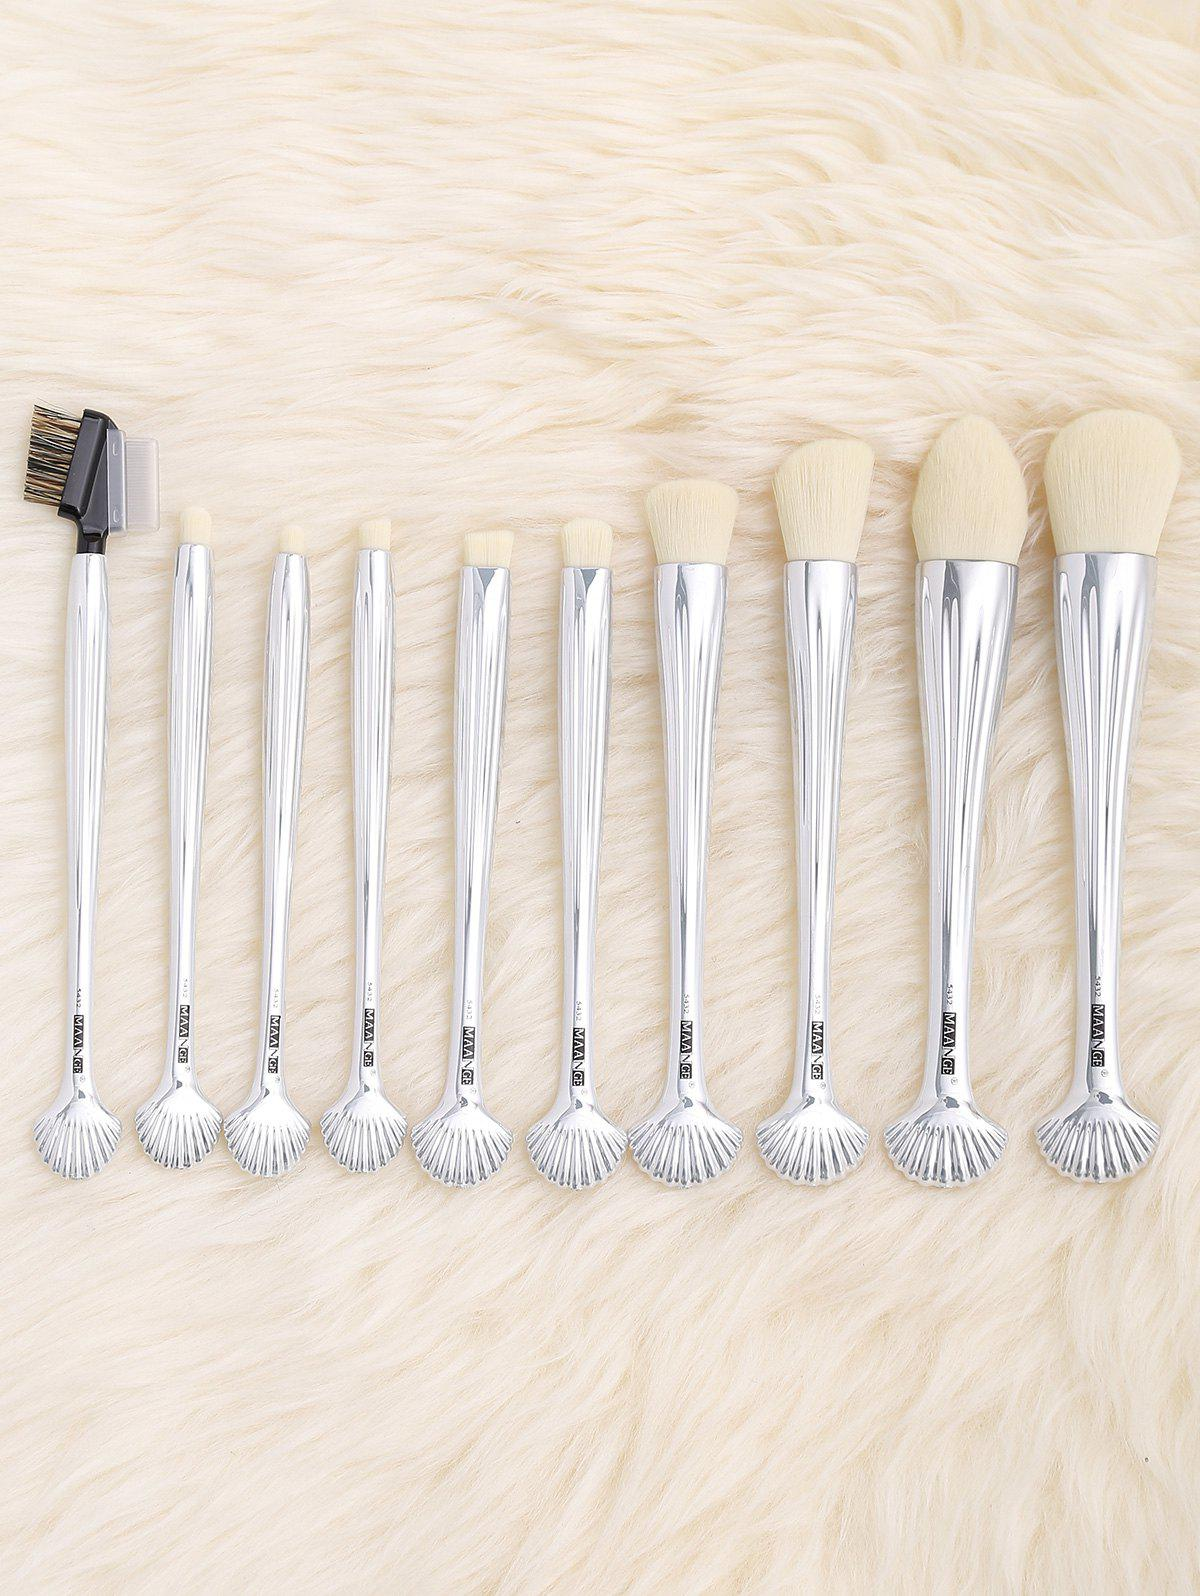 10Pcs Multifunction Gradient Color Shell Design Brushes Set - Blanc Argent